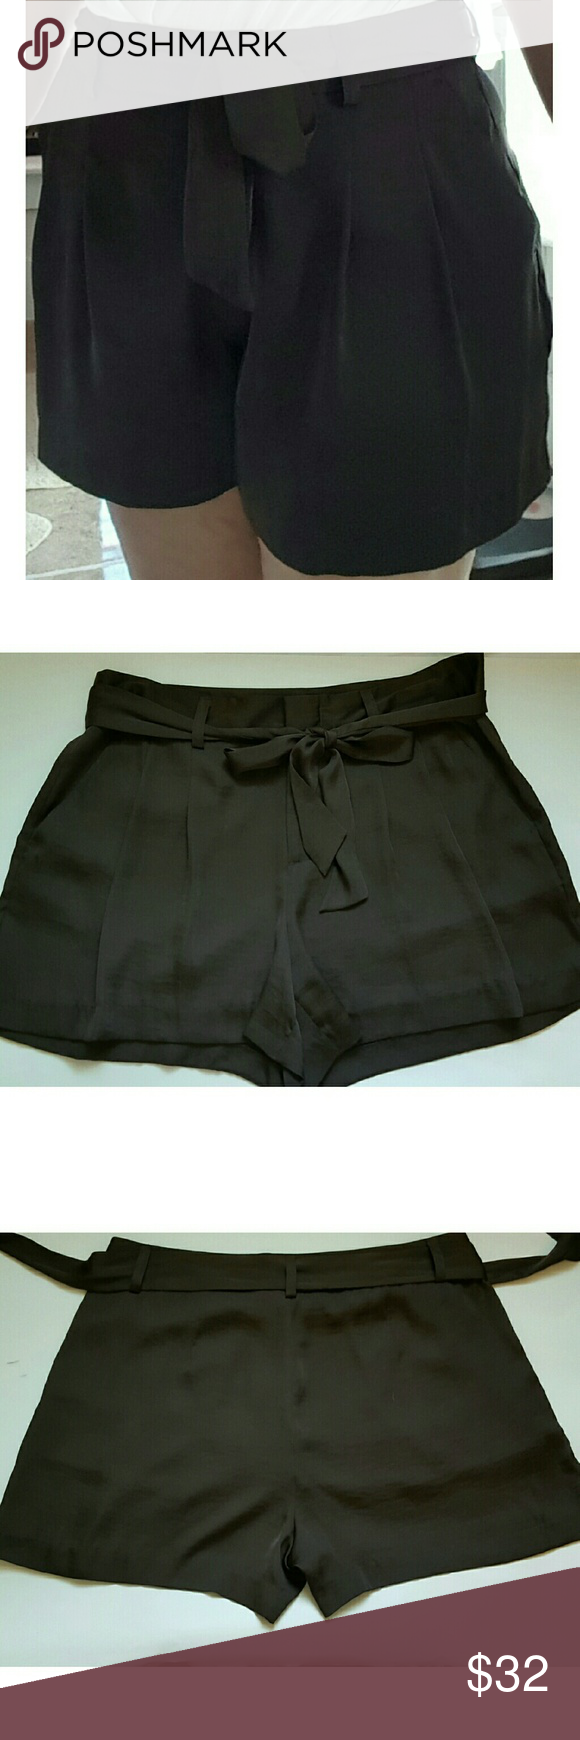 Vince Camuto belted shorts with pleas You will exude chic, laid-back style, with this VC shorts. With a relaxed fit through the legs, this piece is made if 109% polyester.  Machine washable. Vince Camuto Shorts